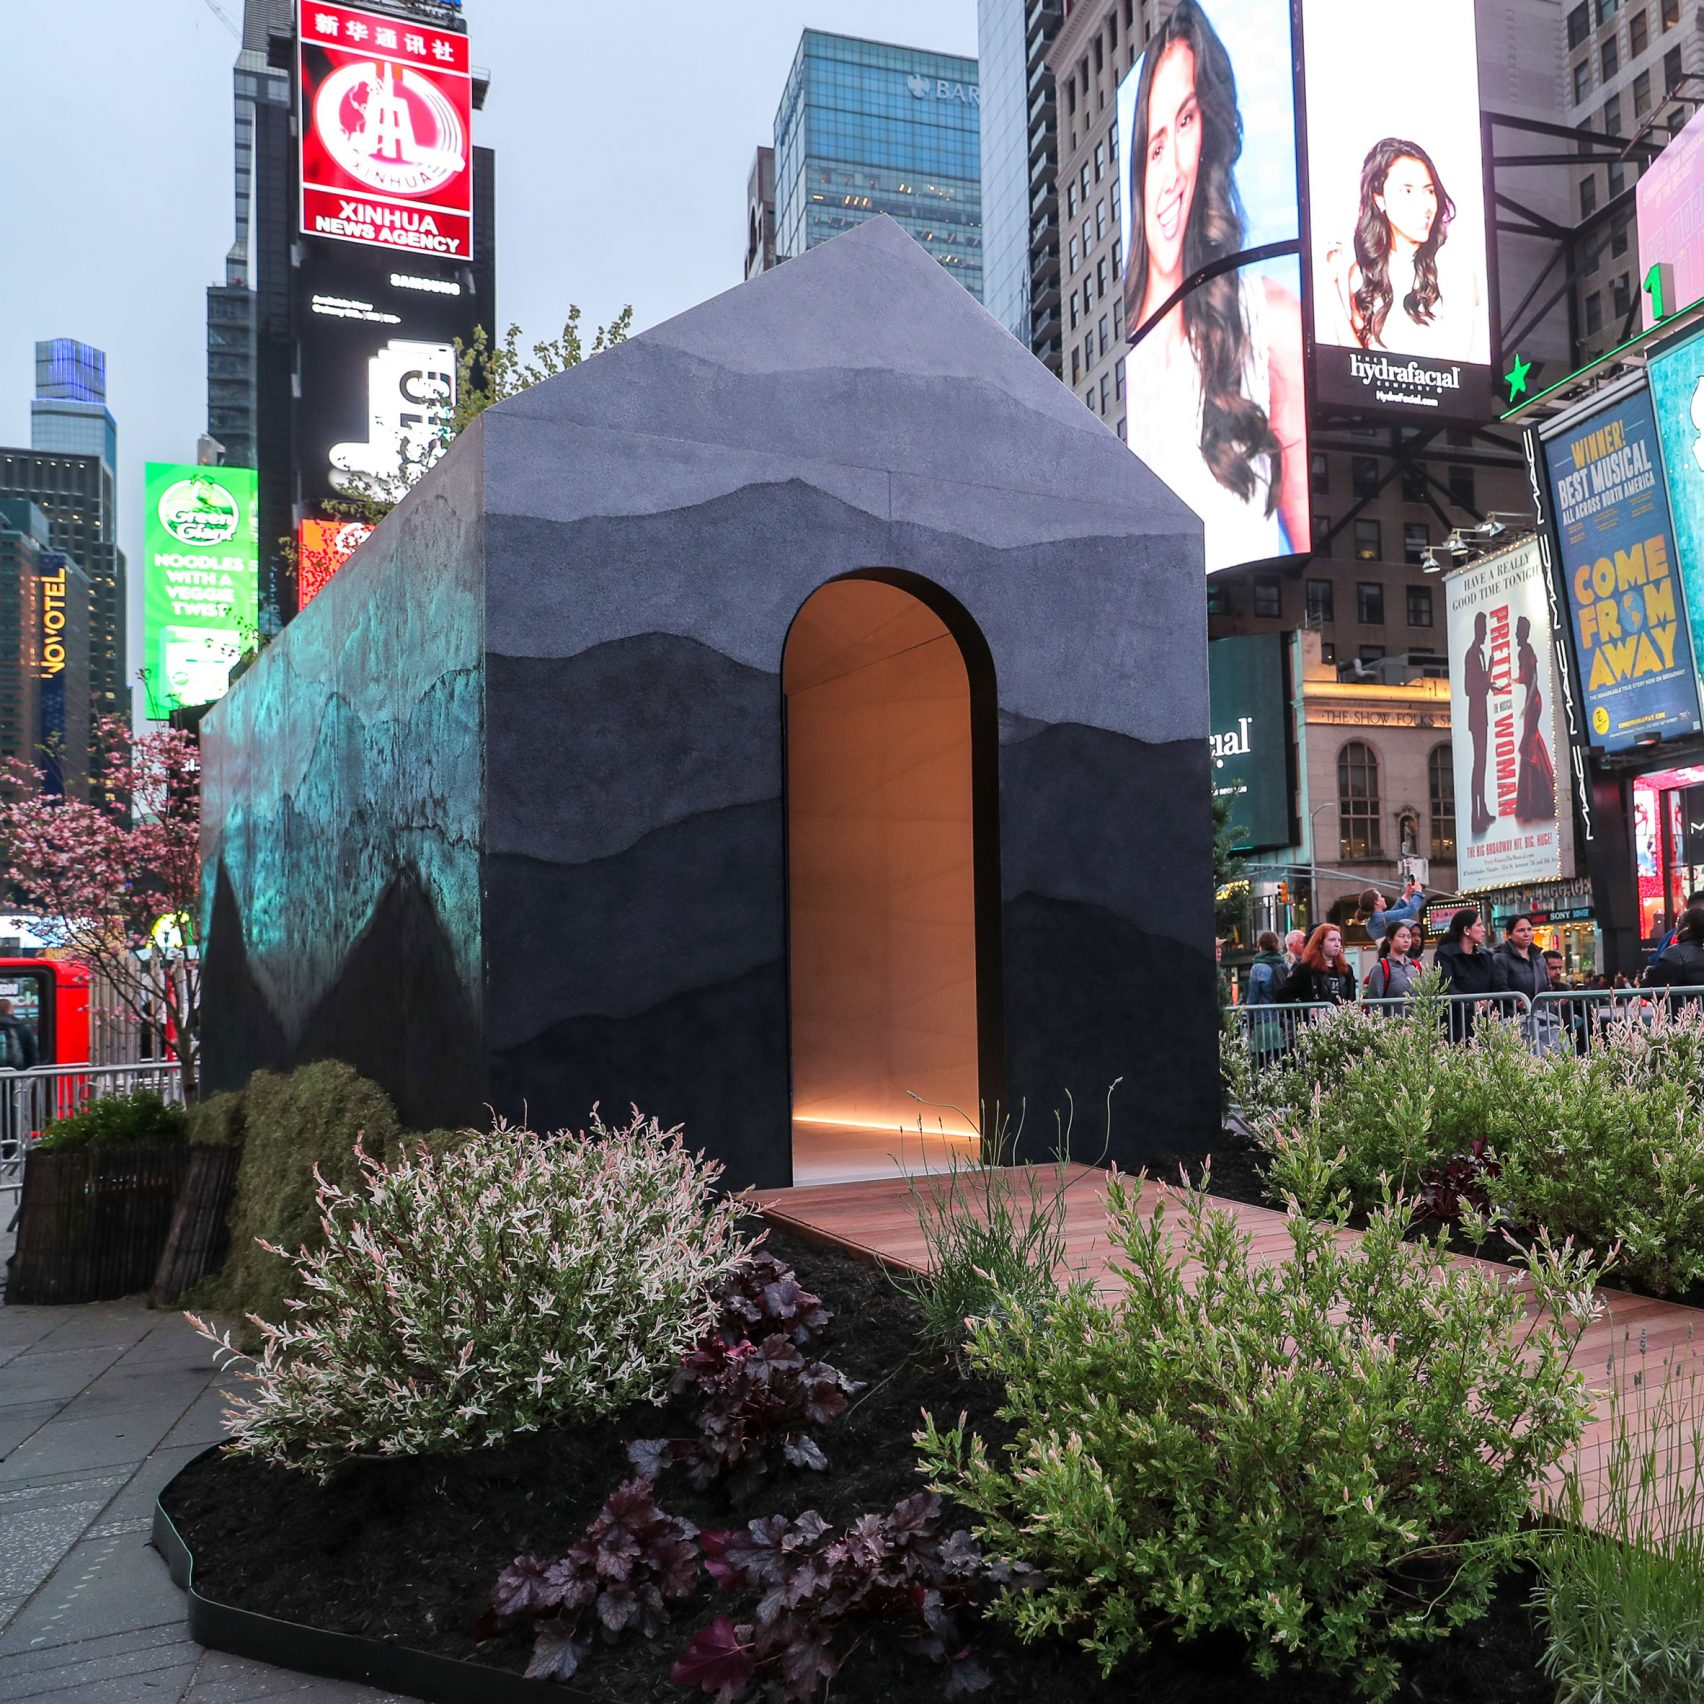 NYCxDesign 2019 Top 10 Best Exhibitions and Installations to Admire - Fernando Mastrangelo Studio - Tiny House nycxdesign NYCxDesign 2019: Top 10 Best Exhibitions and Installations to Admire NYCxDesign 2019 Top 10 Best Exhibitions and Installations to Admire Fernando Mastrangelo Studio Tiny House